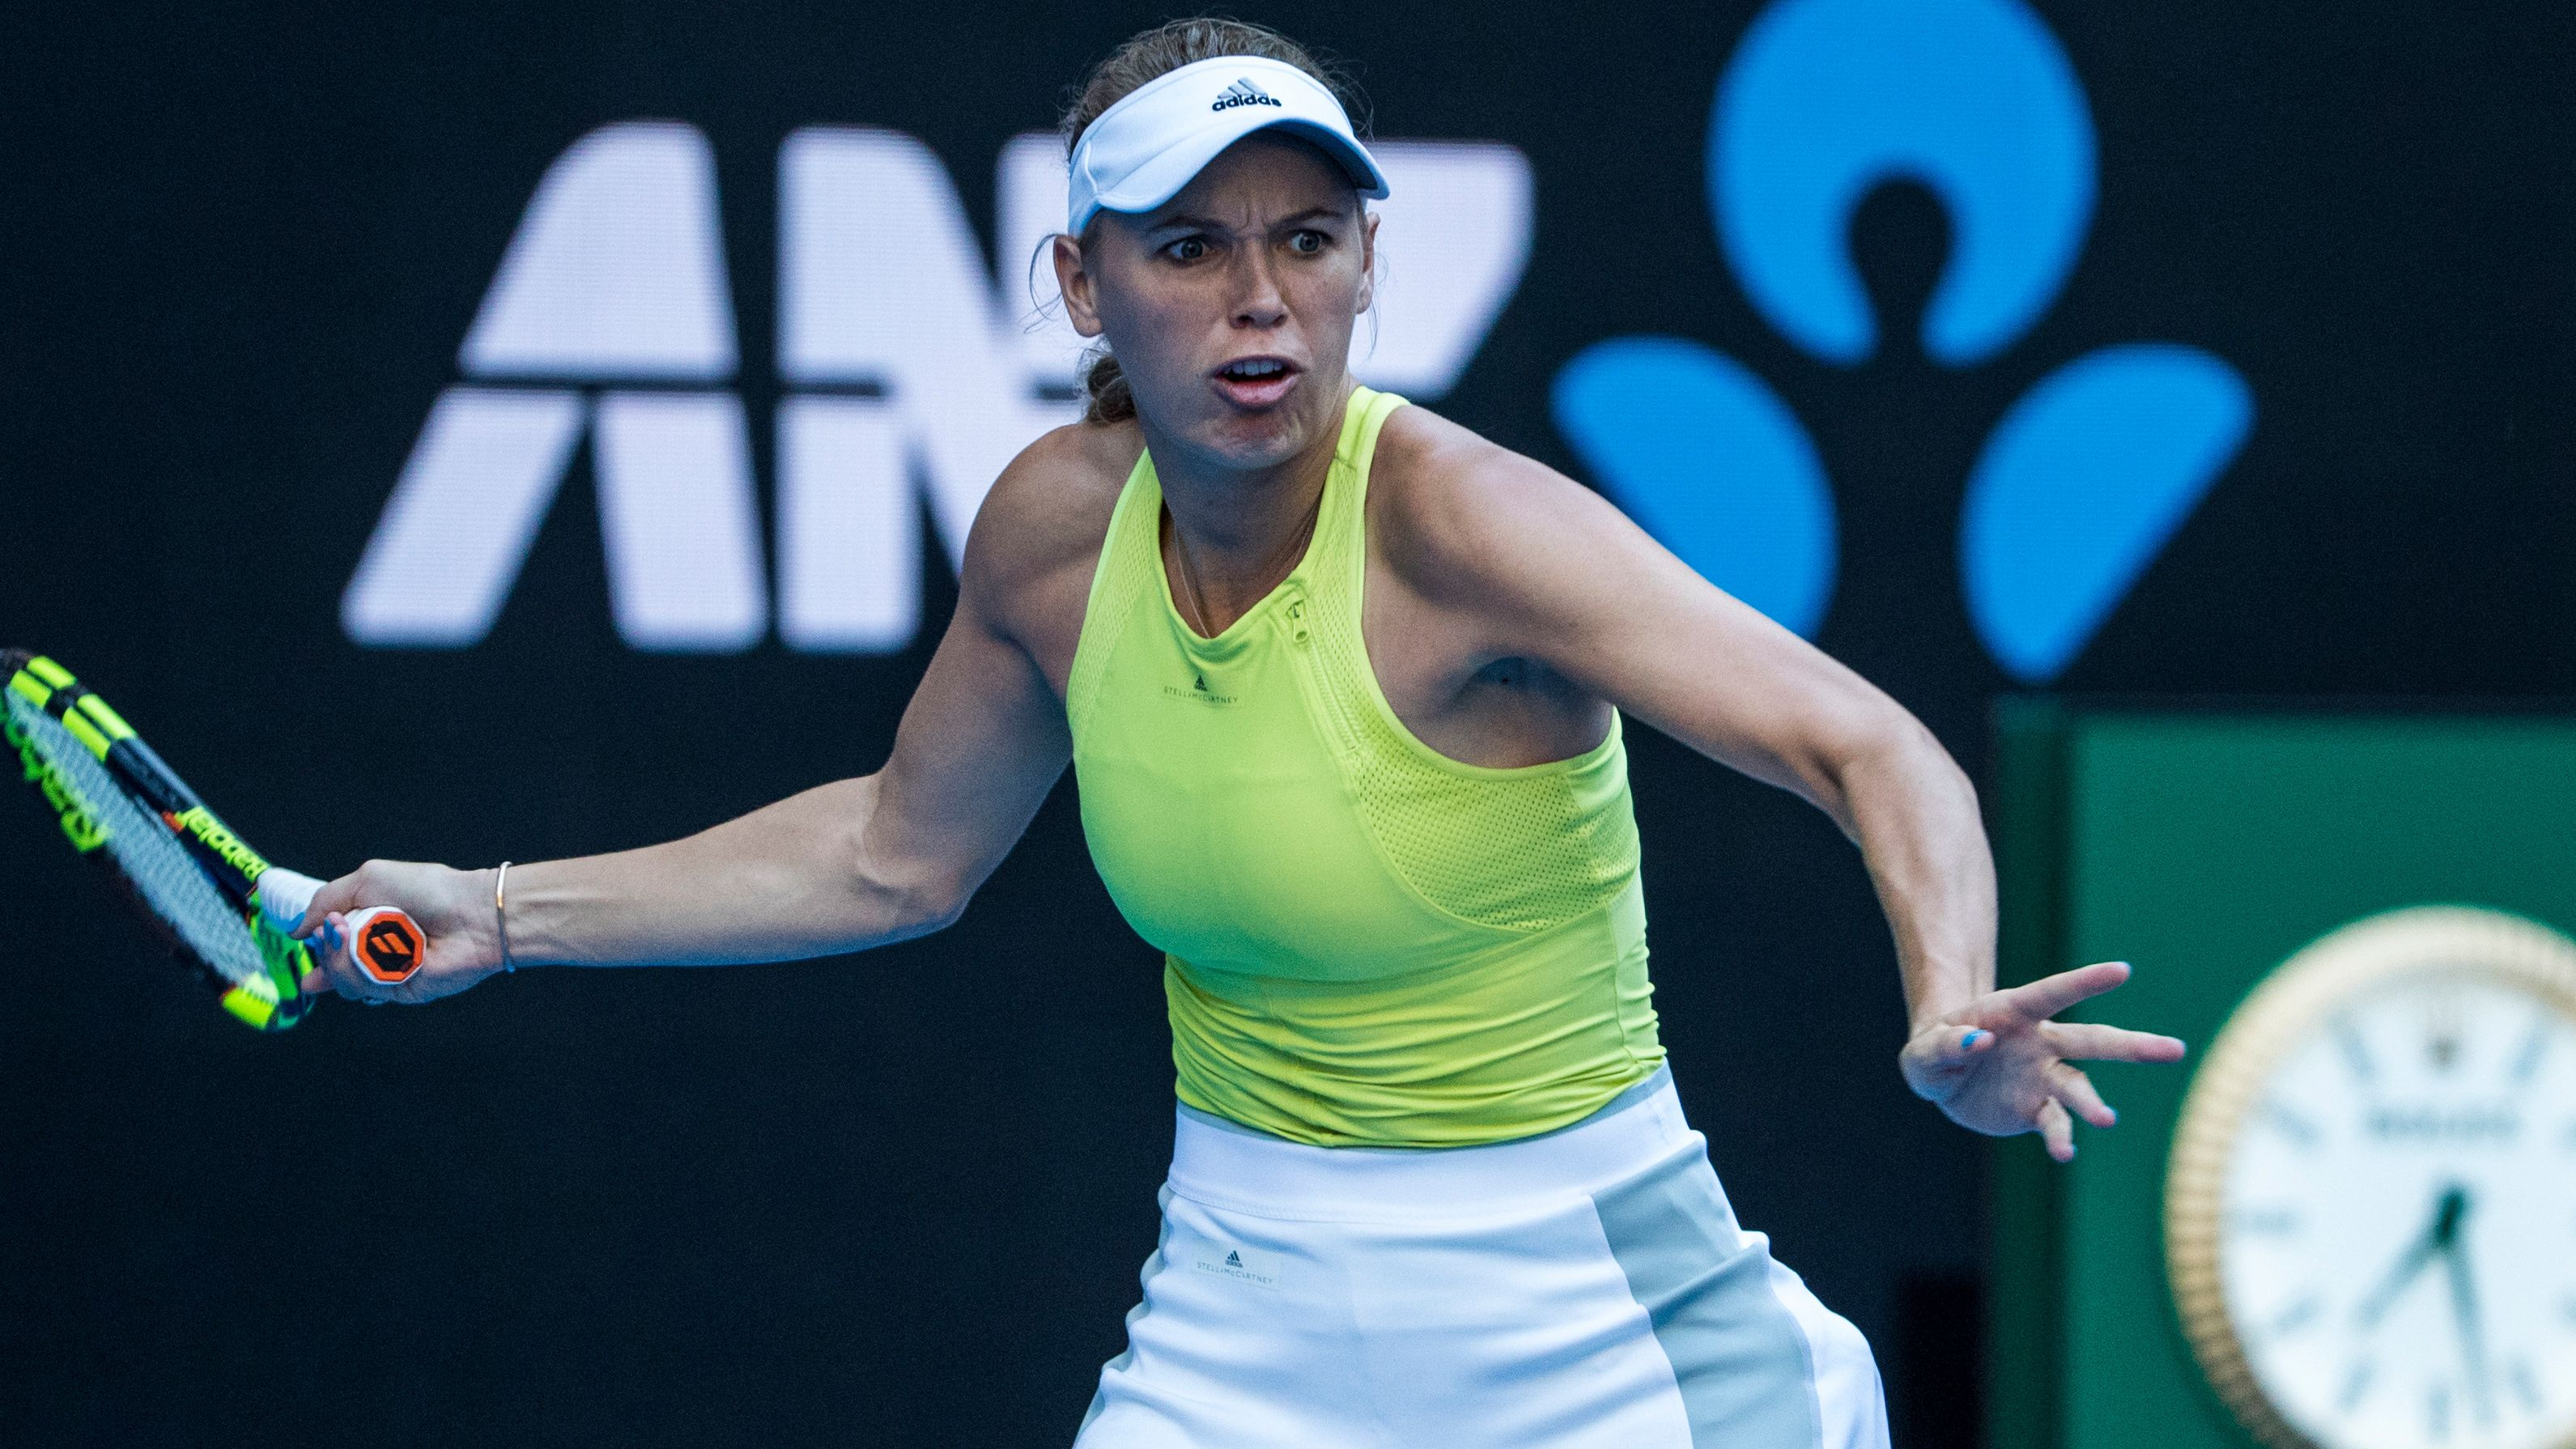 (2) Wozniacki vs. Fett (Women's Second Round)